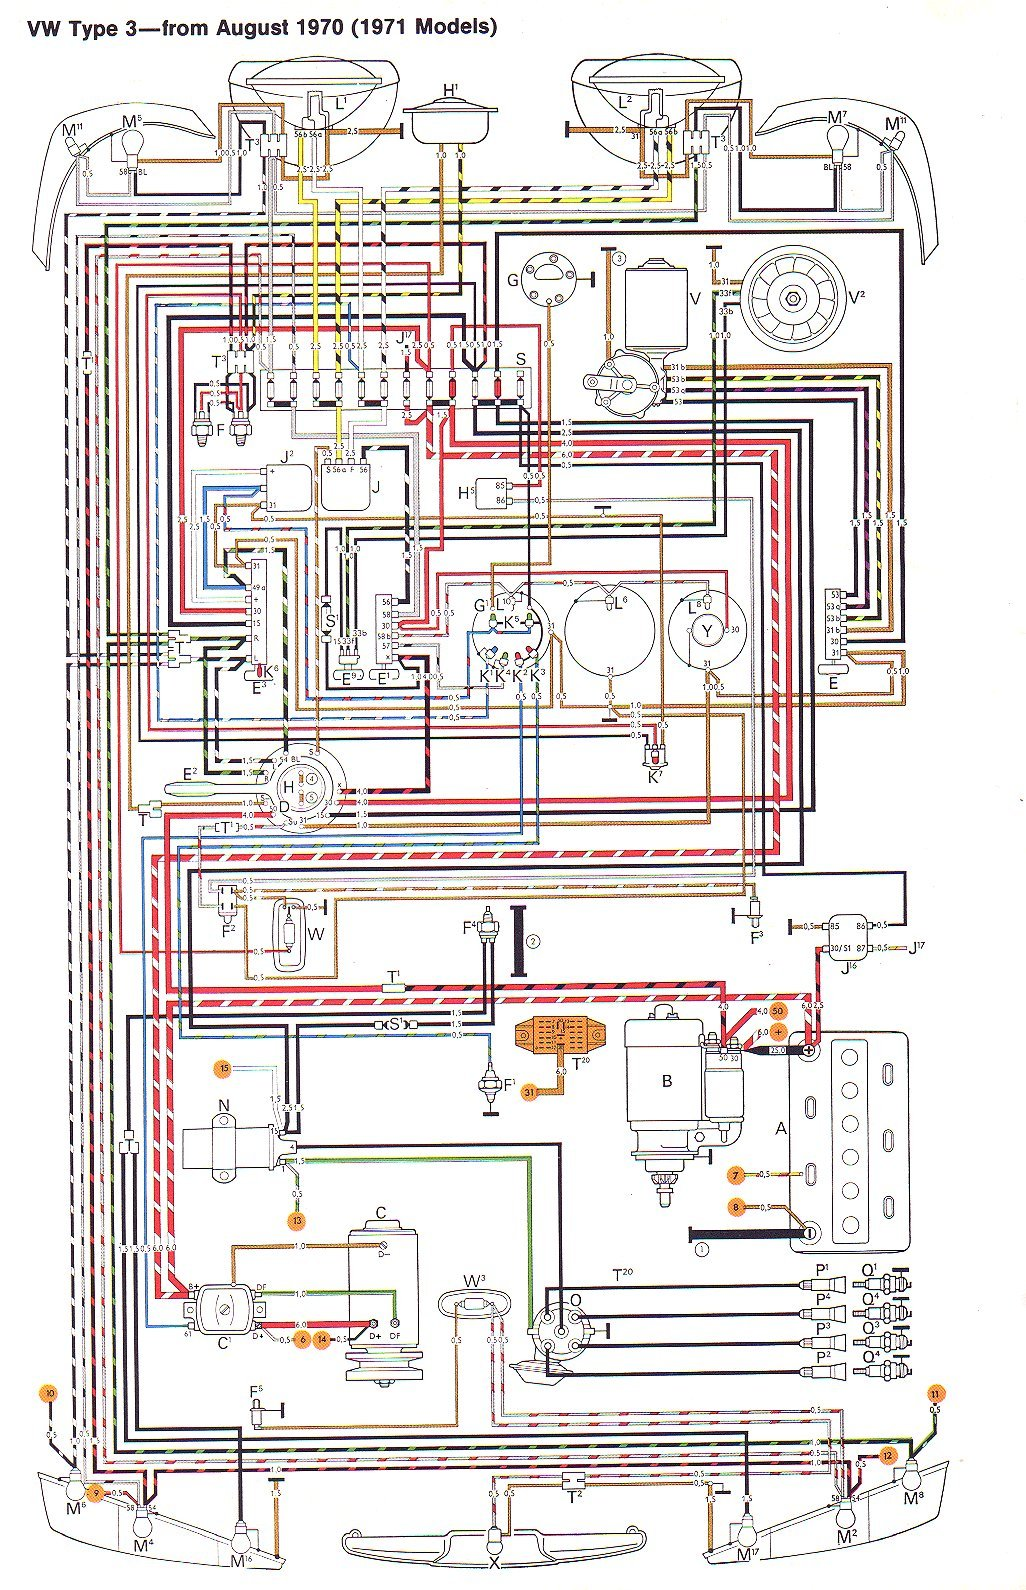 wire71t3 vw type 3 wiring diagrams 1968 vw type 3 wiring diagram at gsmx.co